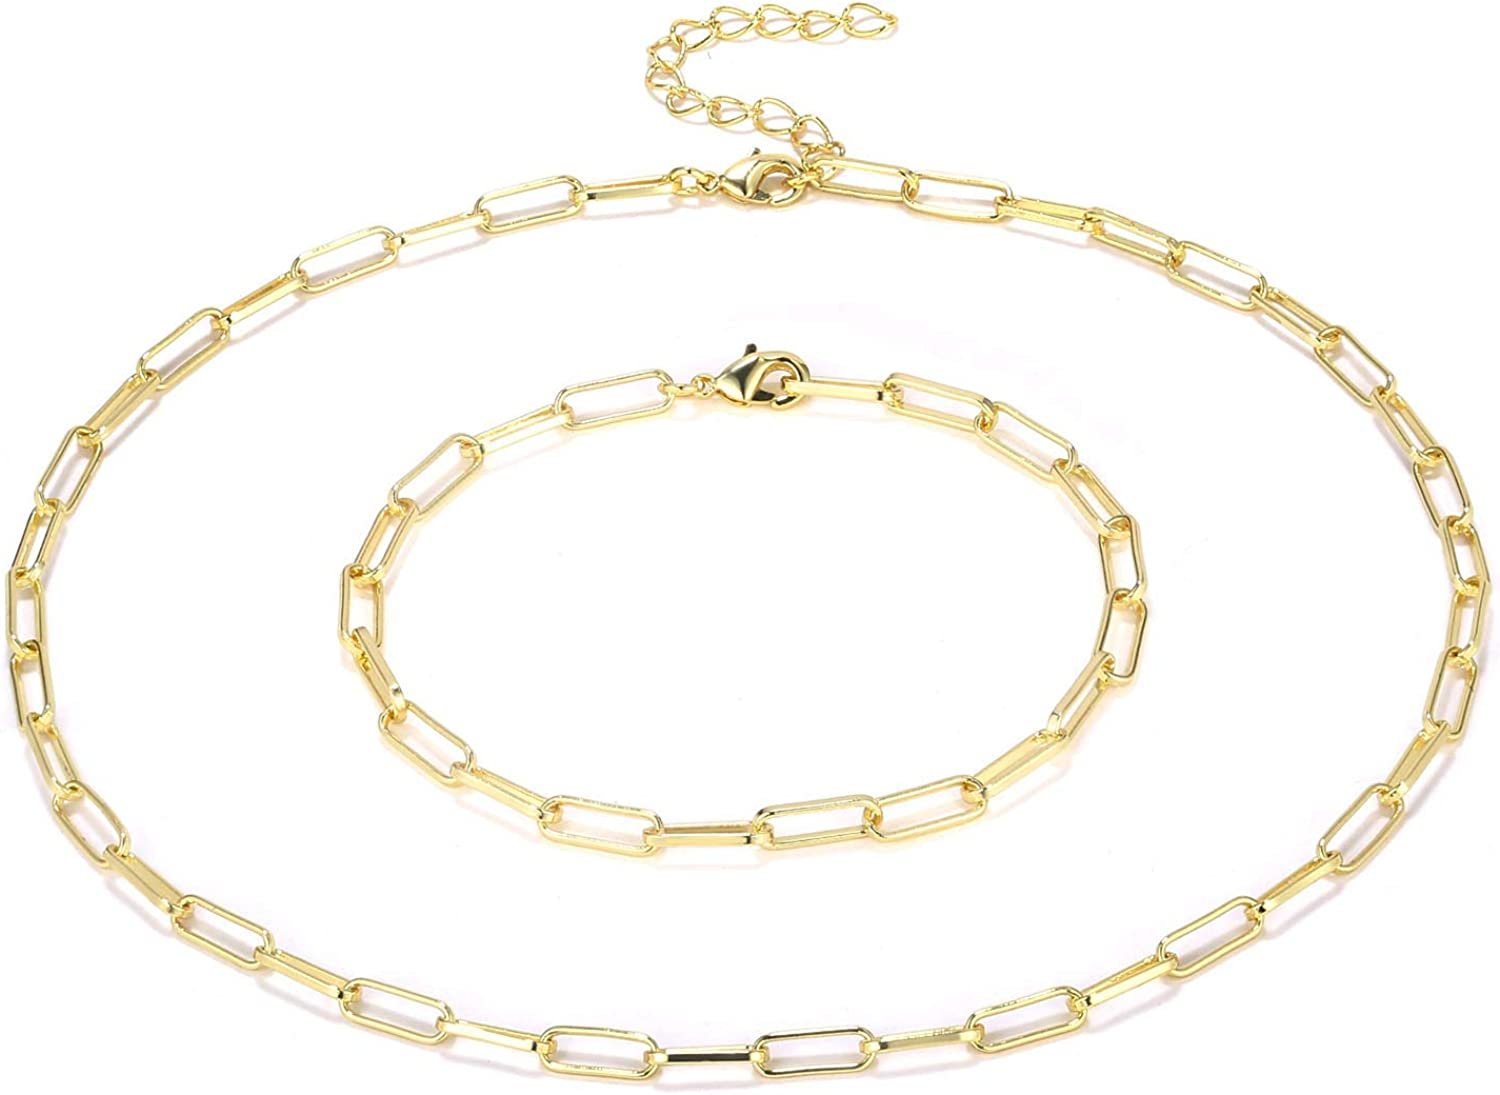 Paper Clip Chain dainty layering chain minimal 14k gold filled necklace